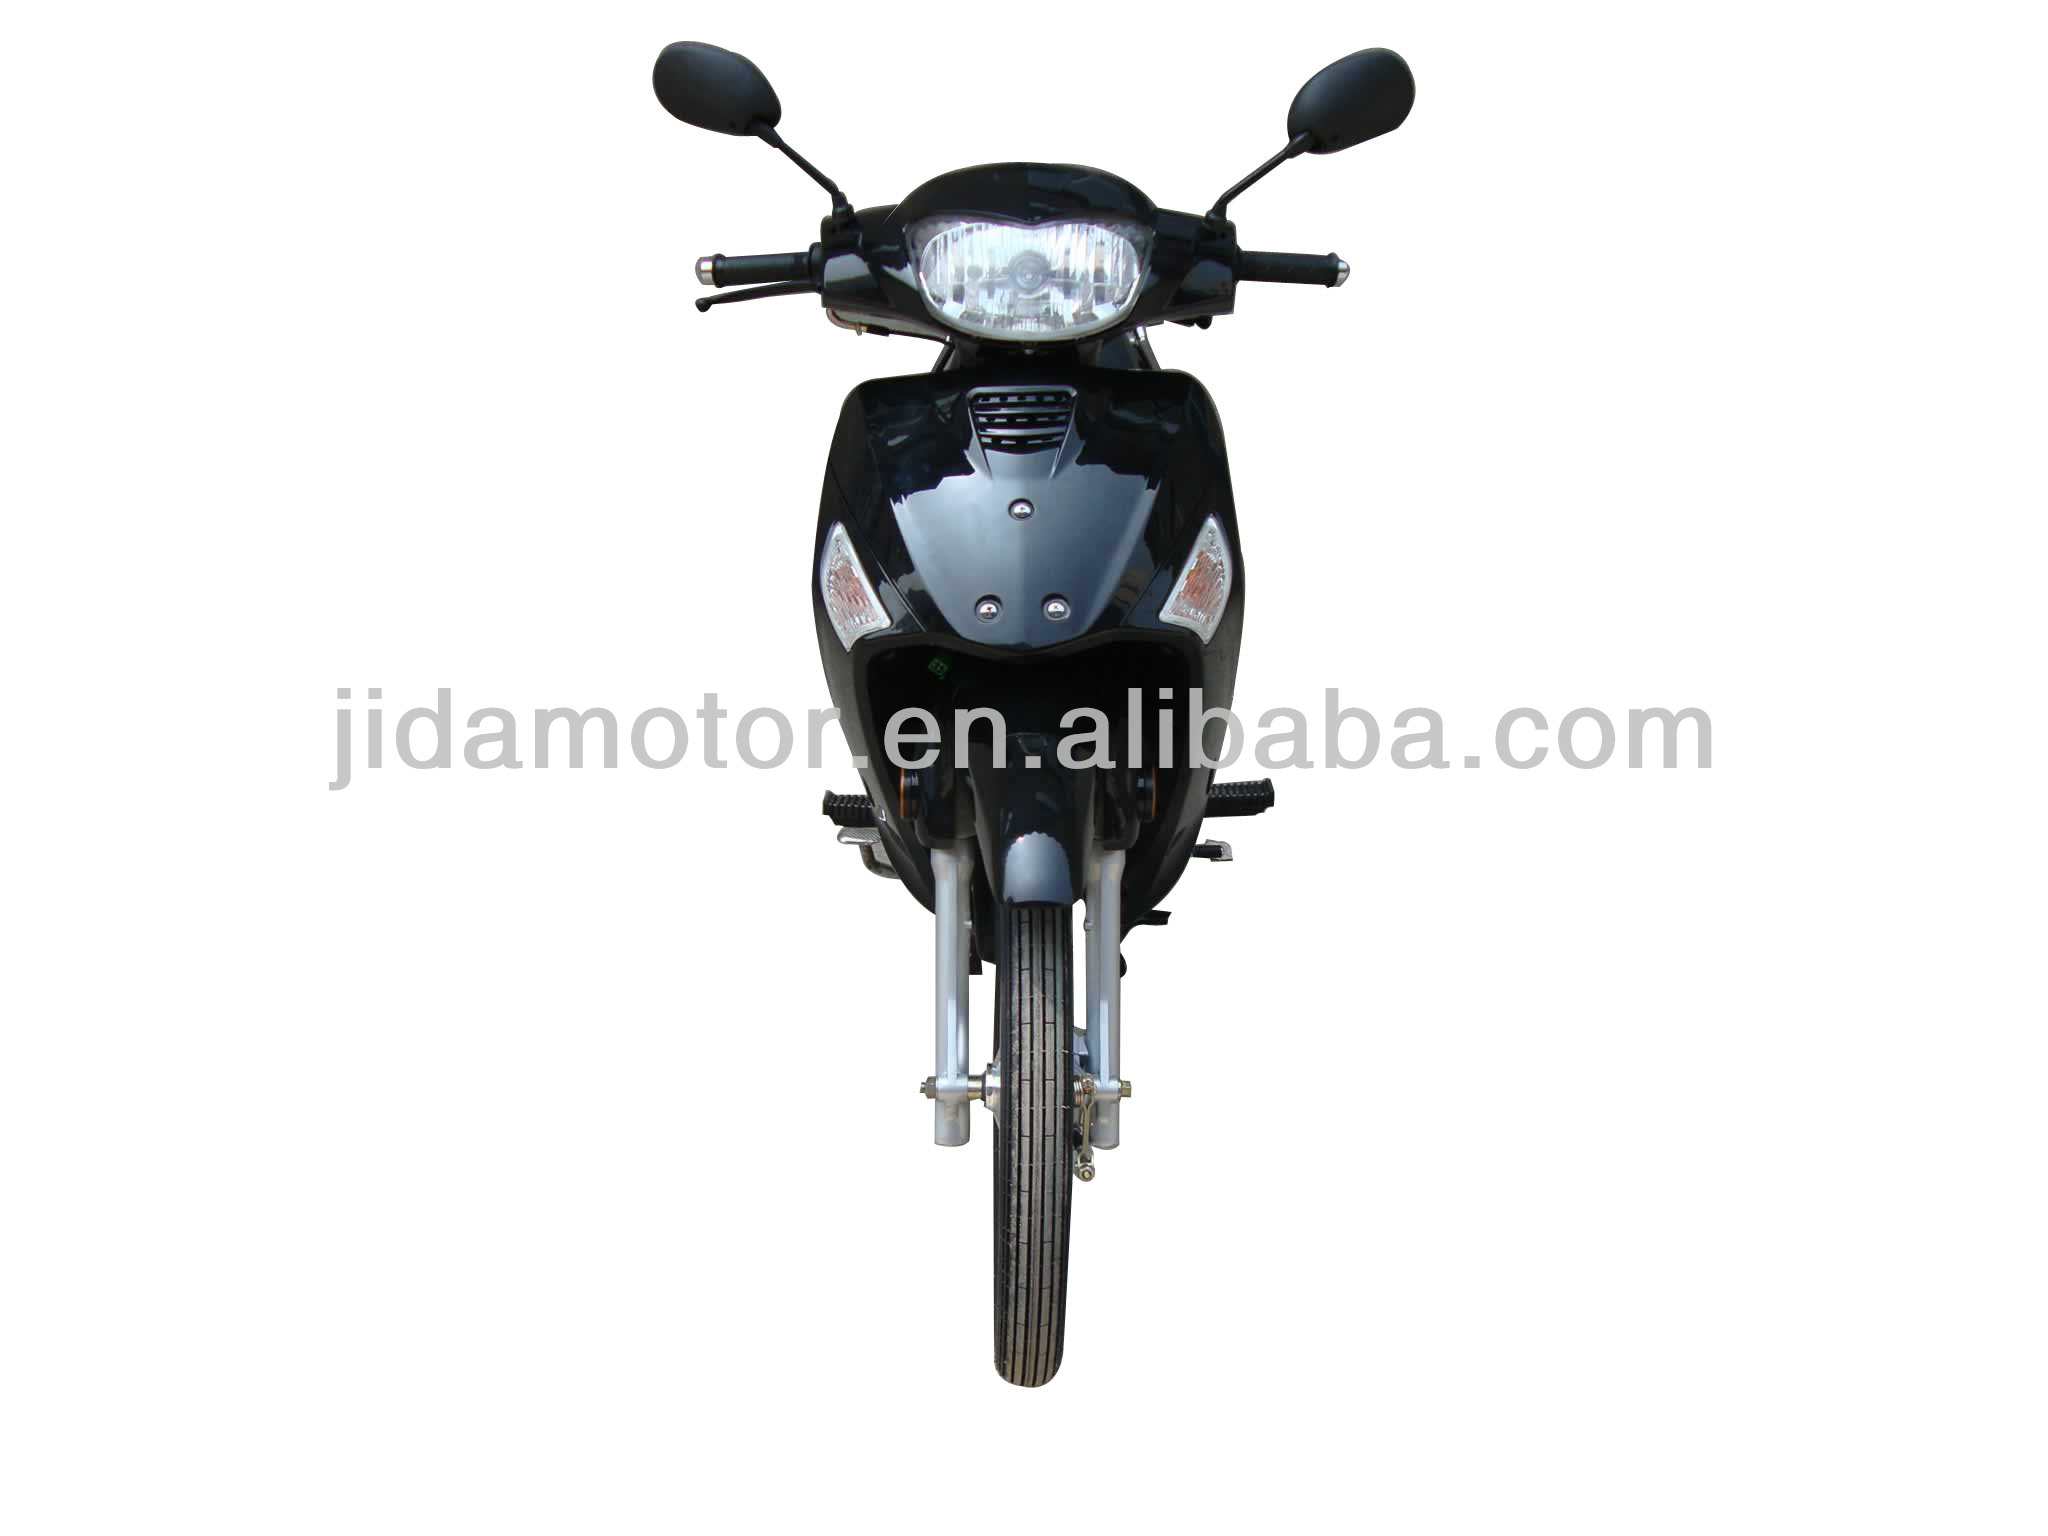 2014 cub motorcycle mini moto JD110C-21